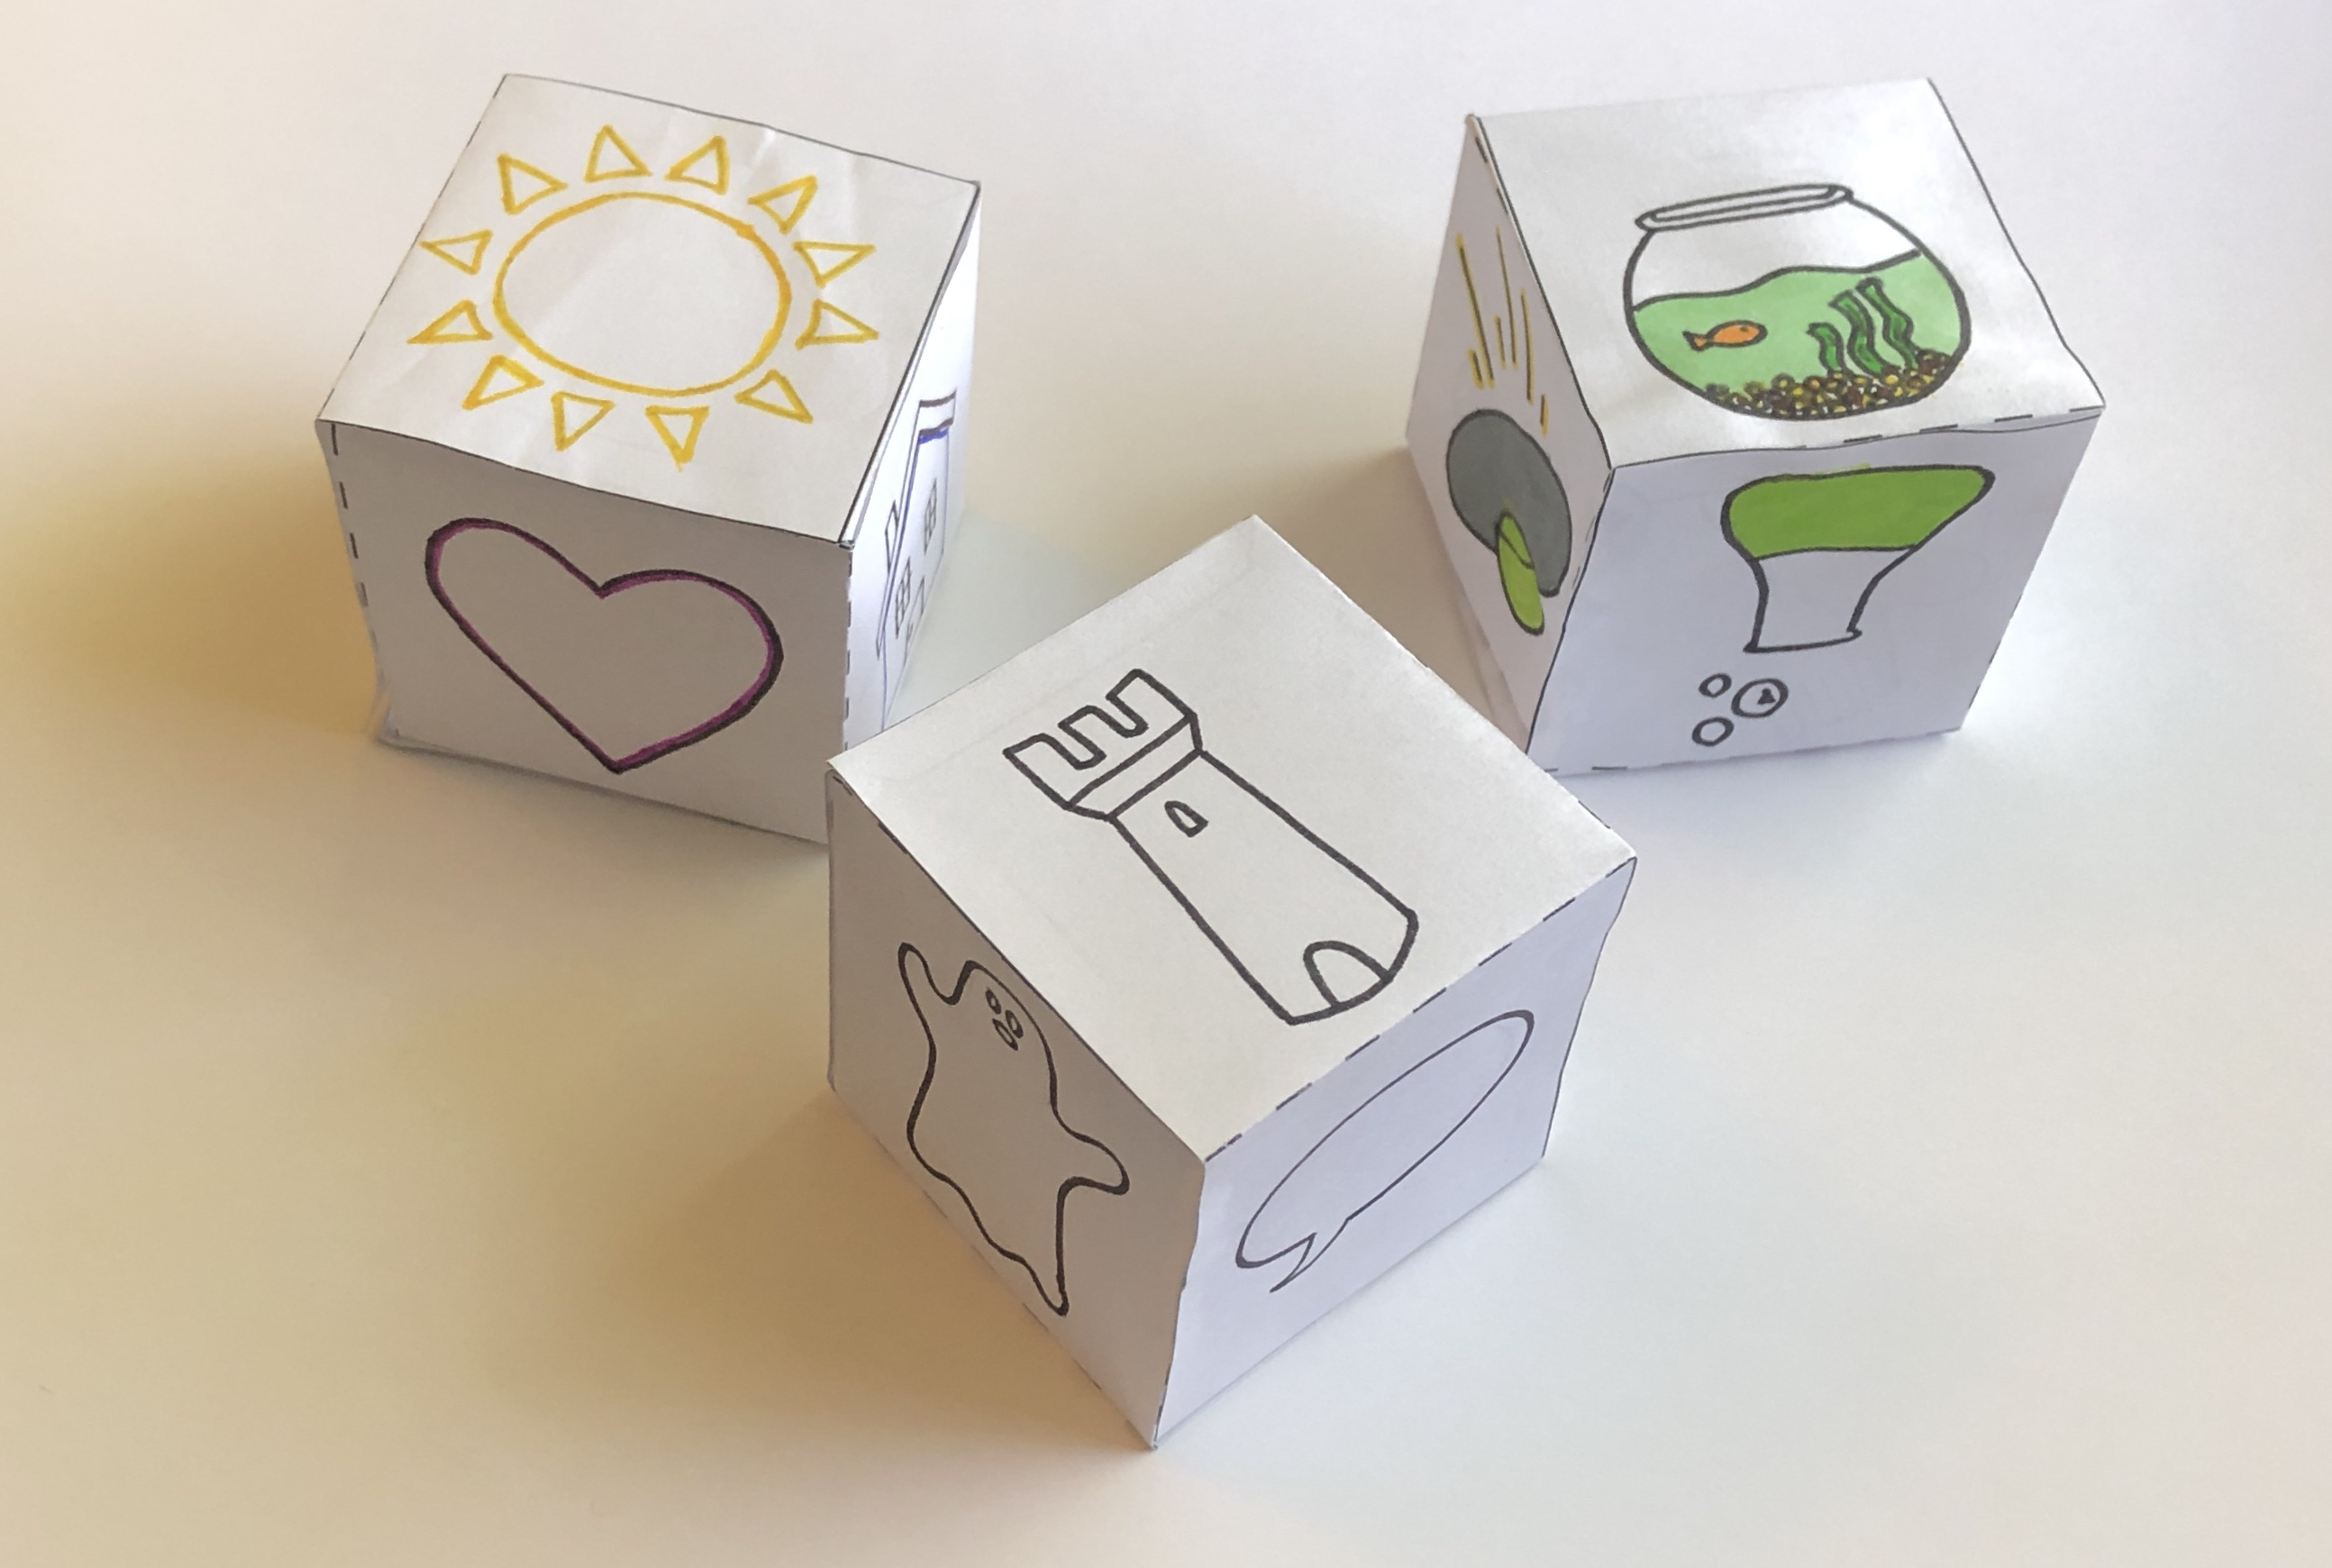 Create Your Own Story Dice Game